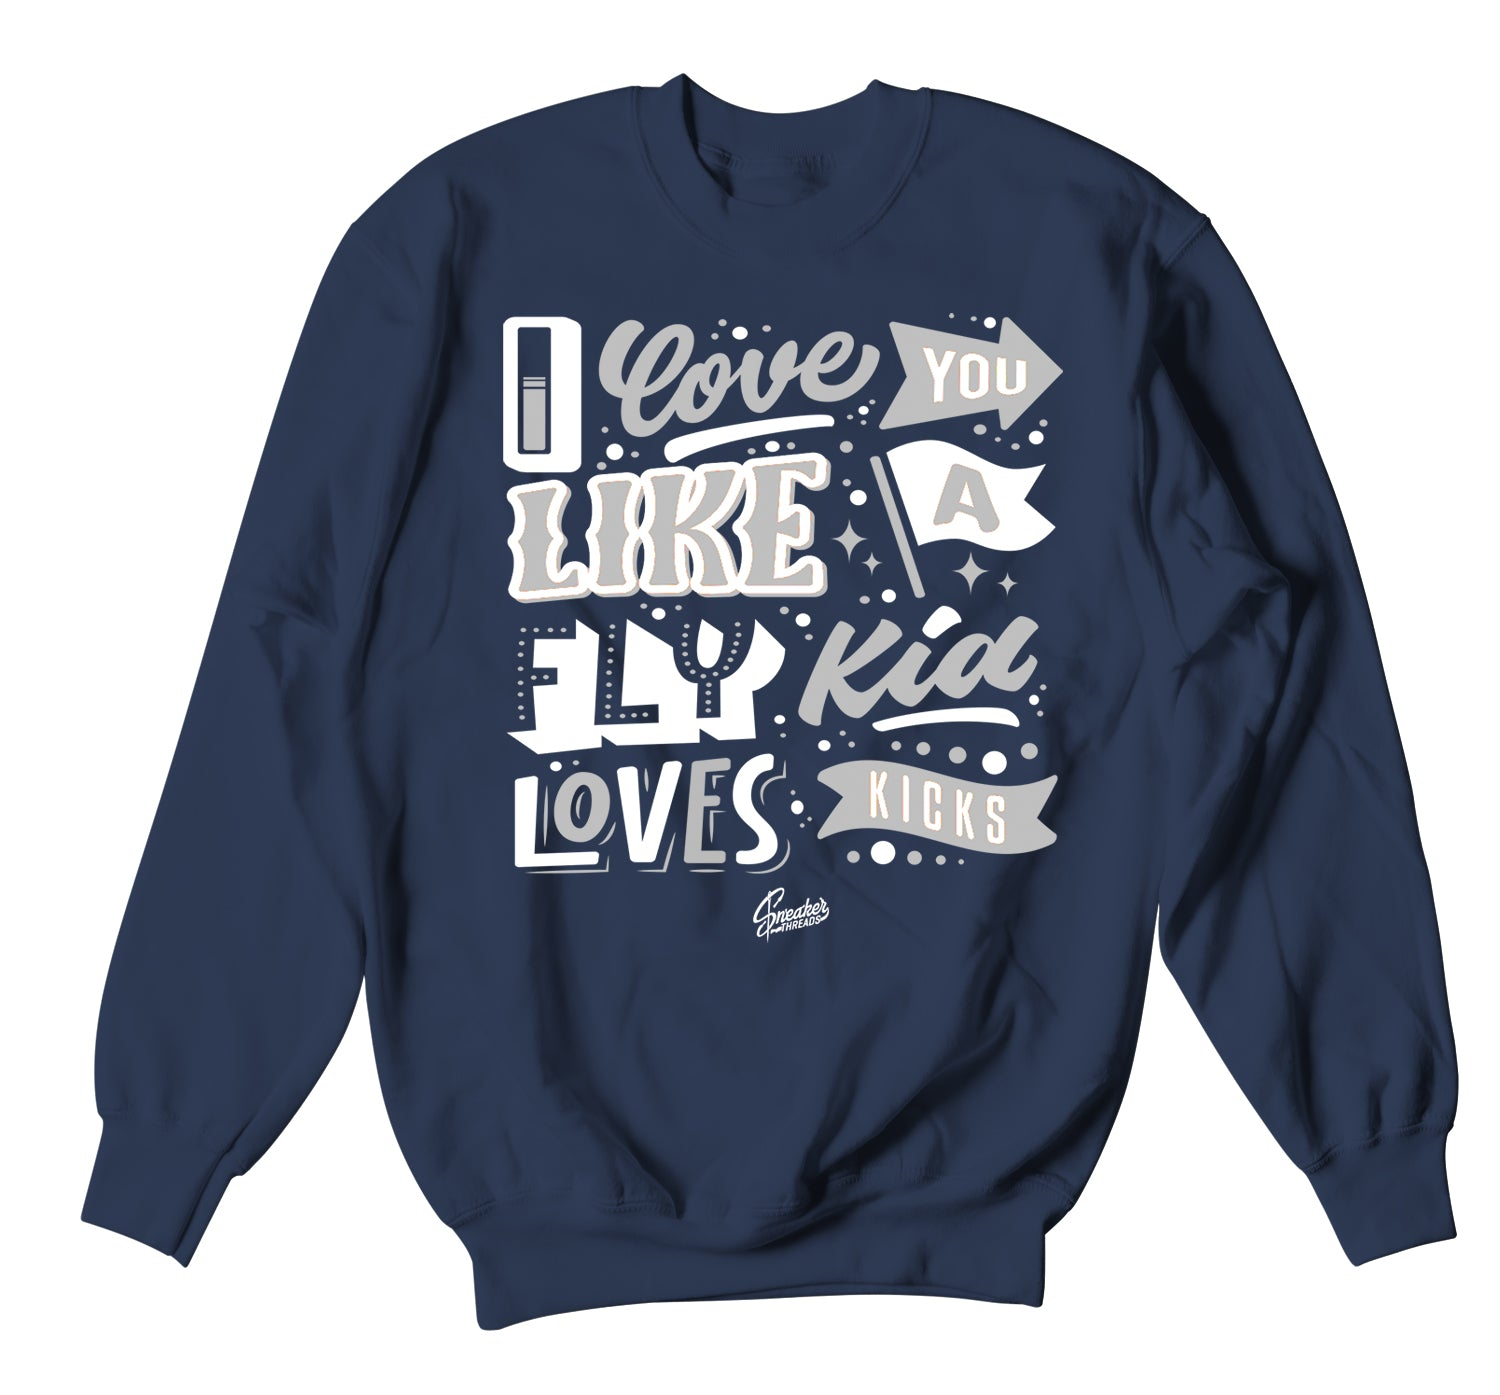 Sweat shirt collection to match the jordan 1 midnight navy sneaker collection